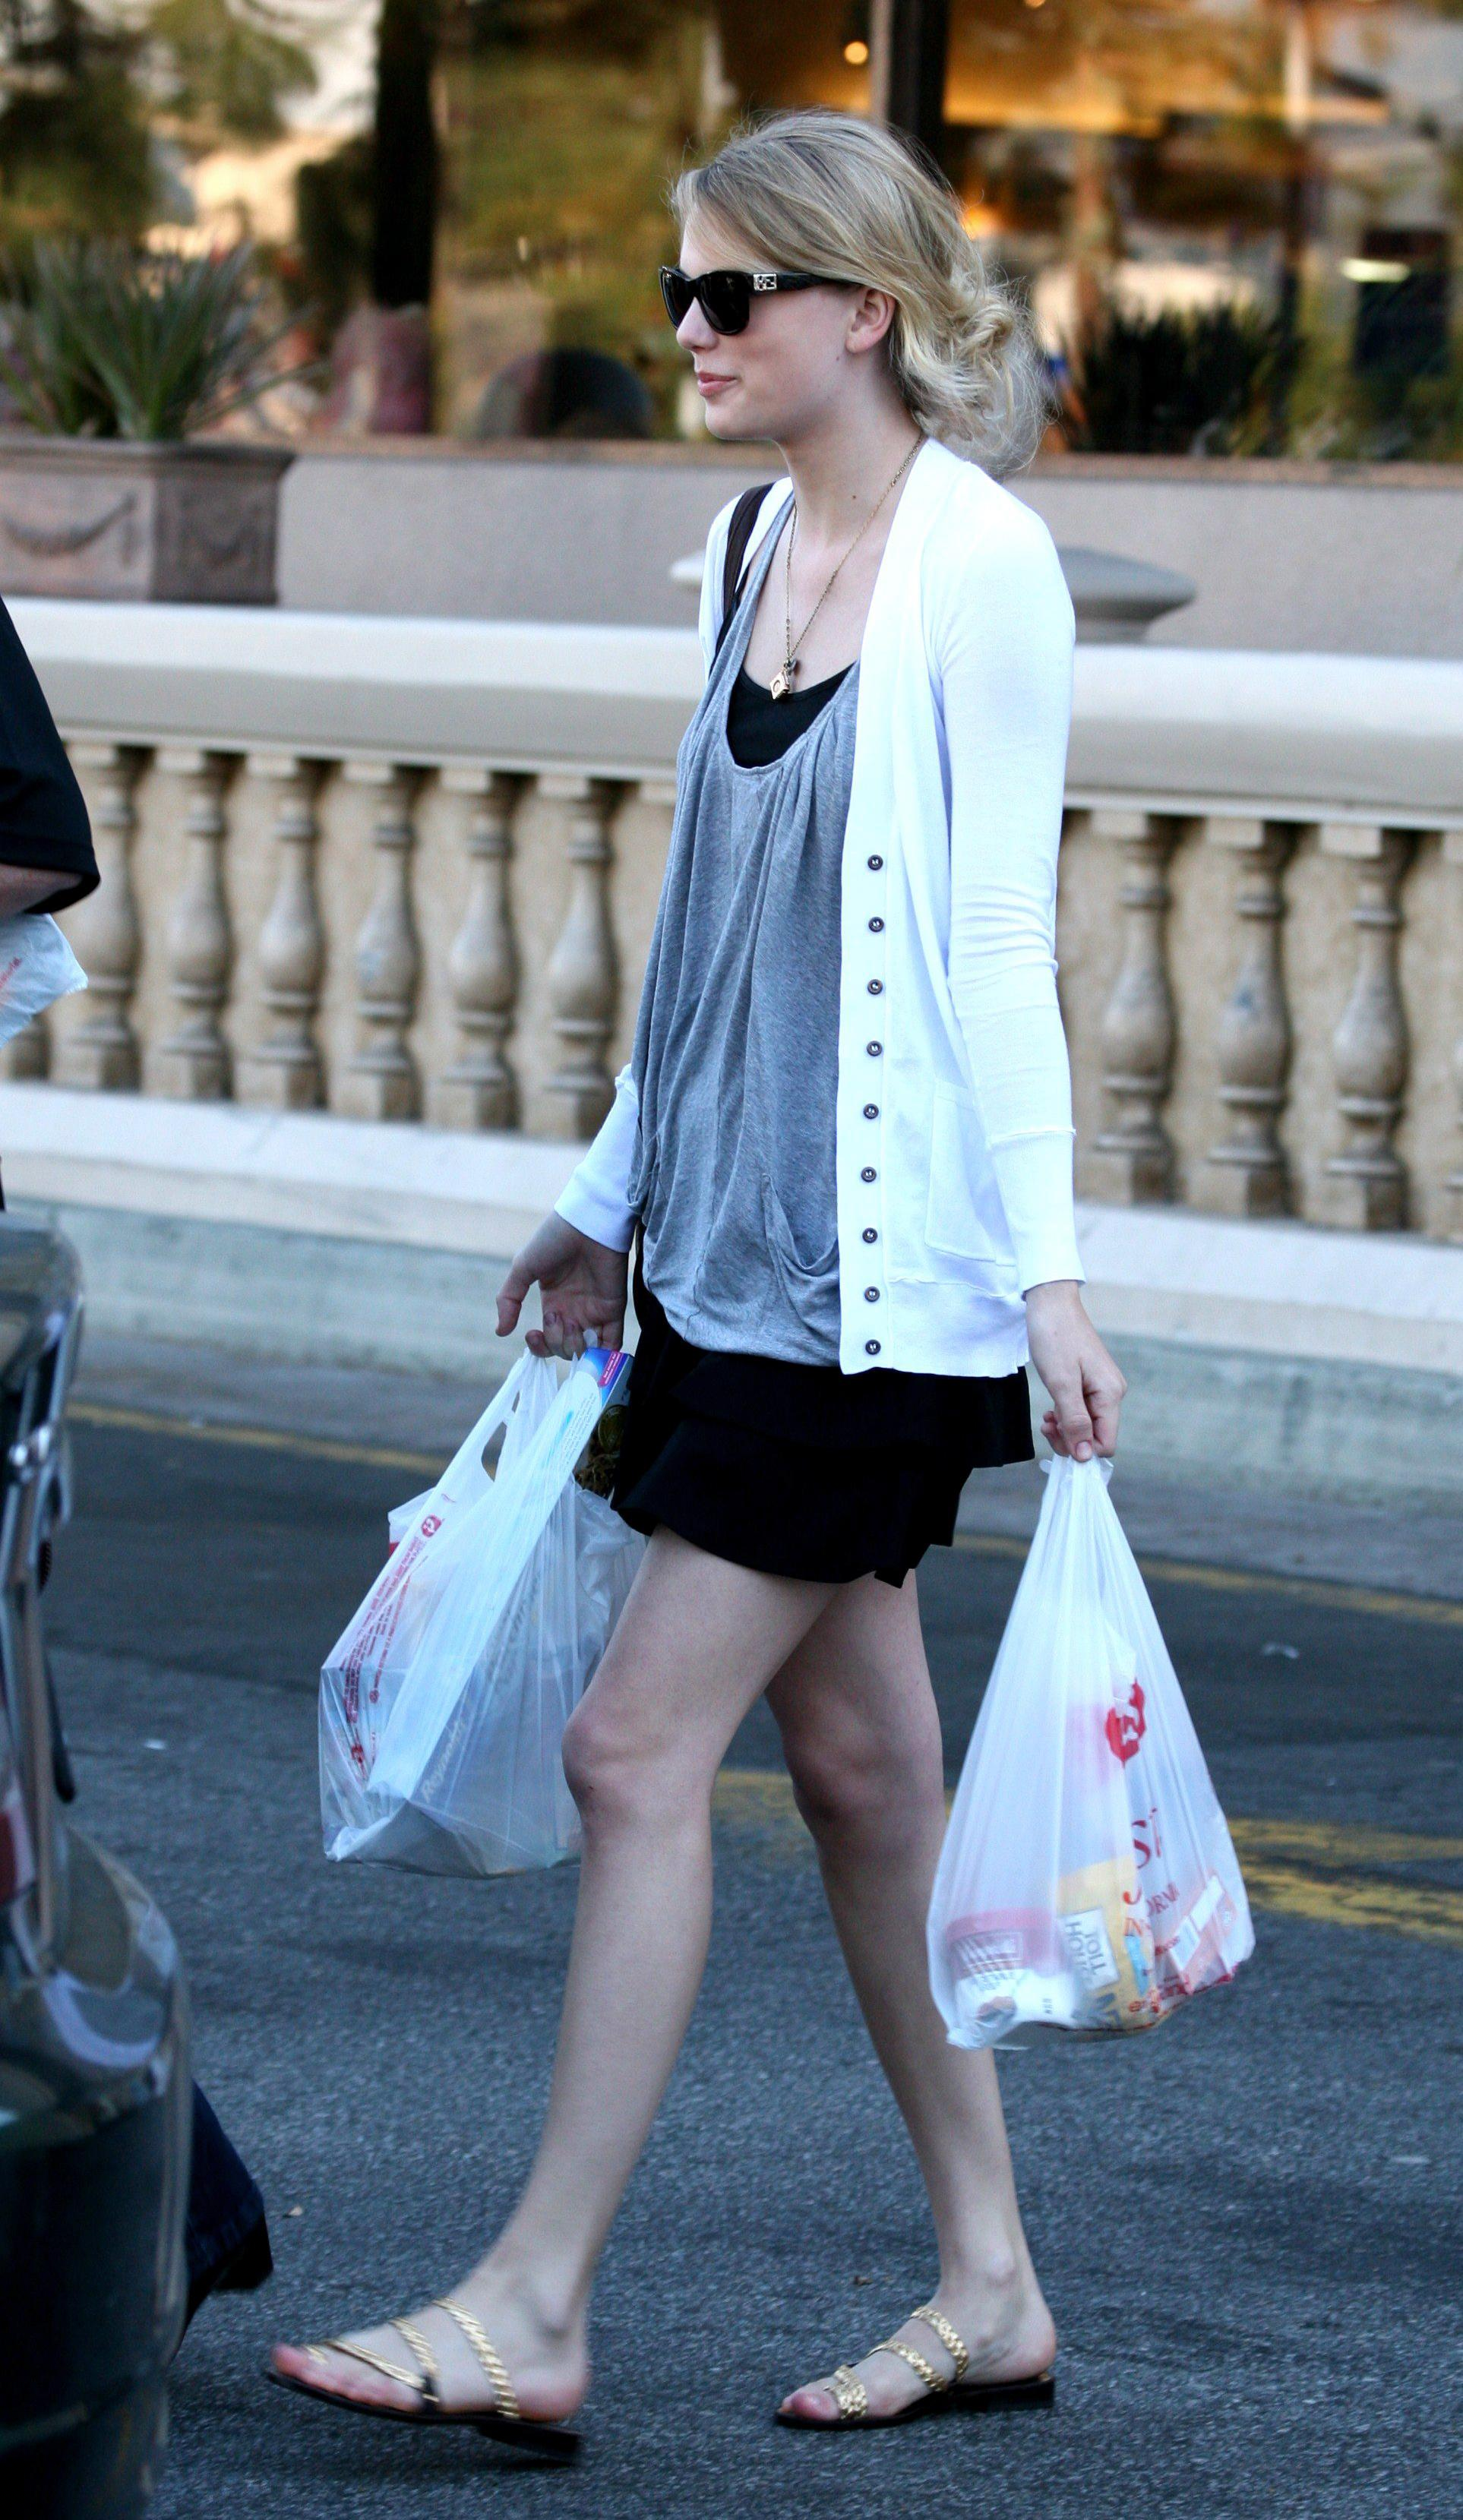 Taylorpictures Whole Foods